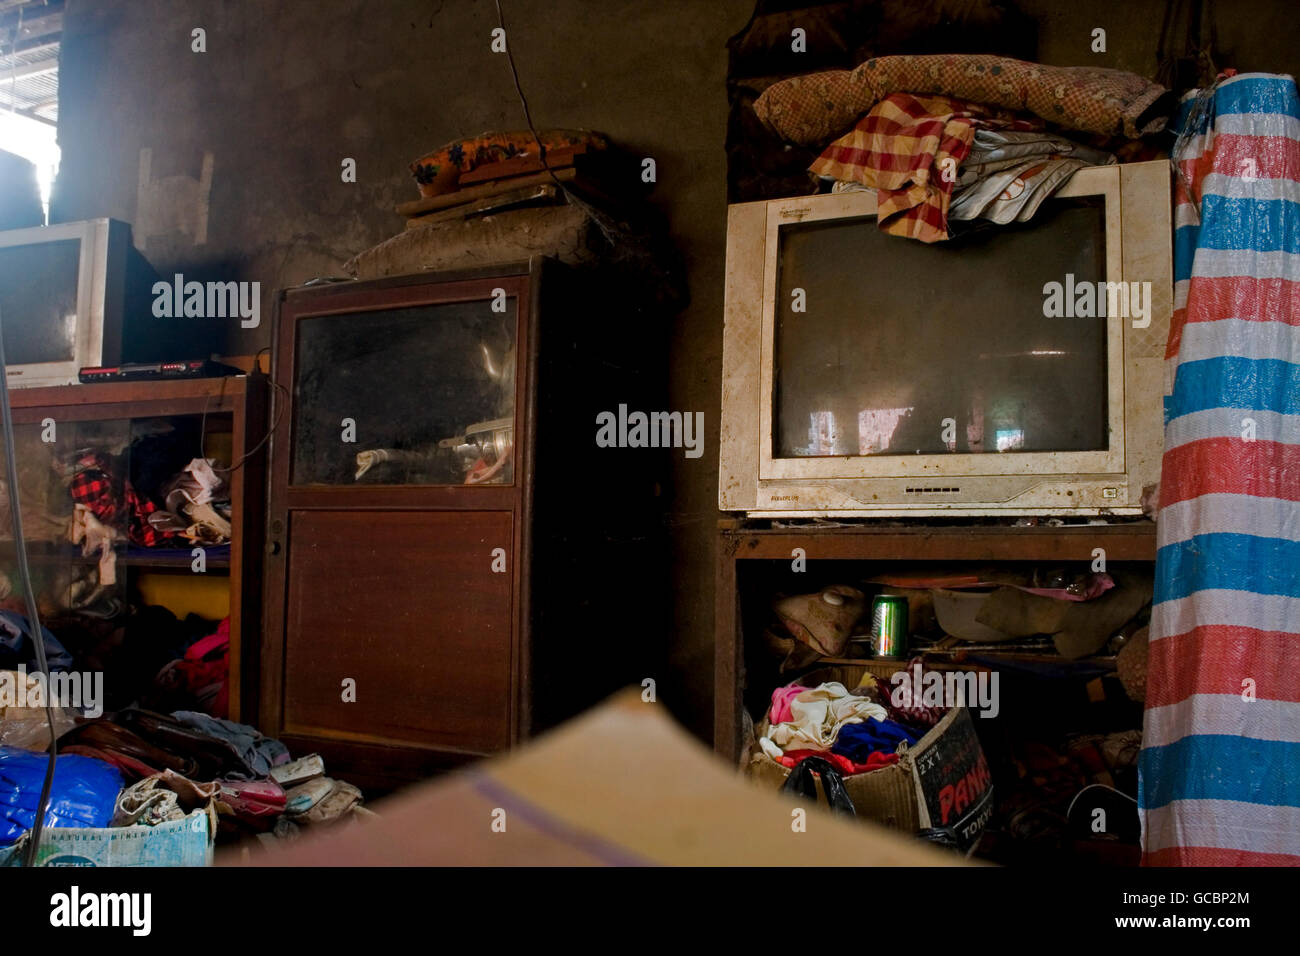 An old Pixel Plus brand multi player sits on a shelf in messy house in Chork Village, Cambodia. - Stock Image